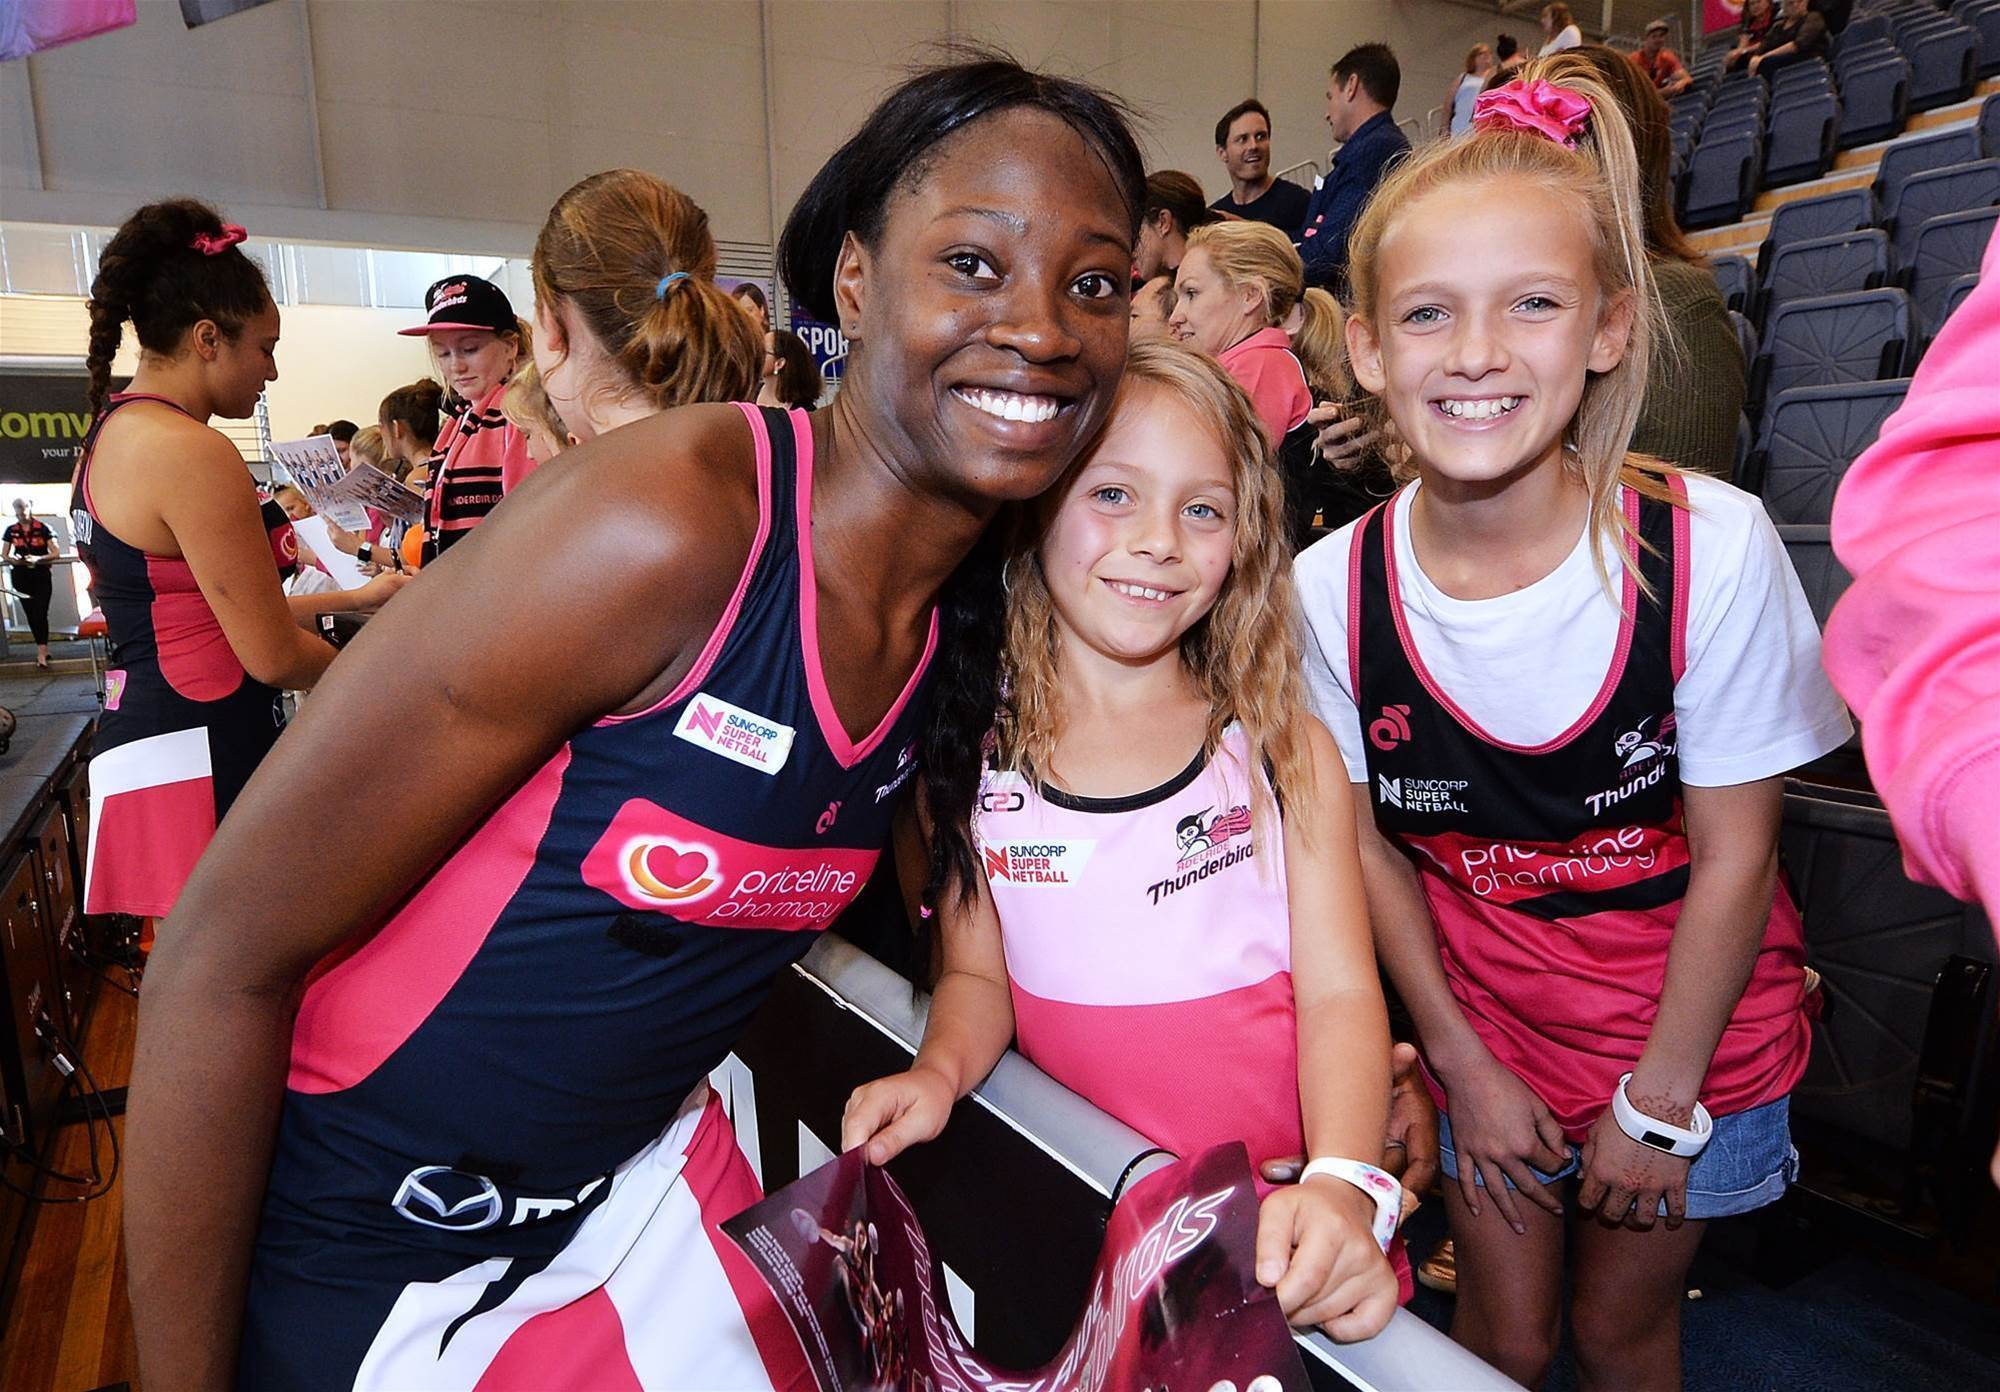 Netball still the number one team sport for young girls